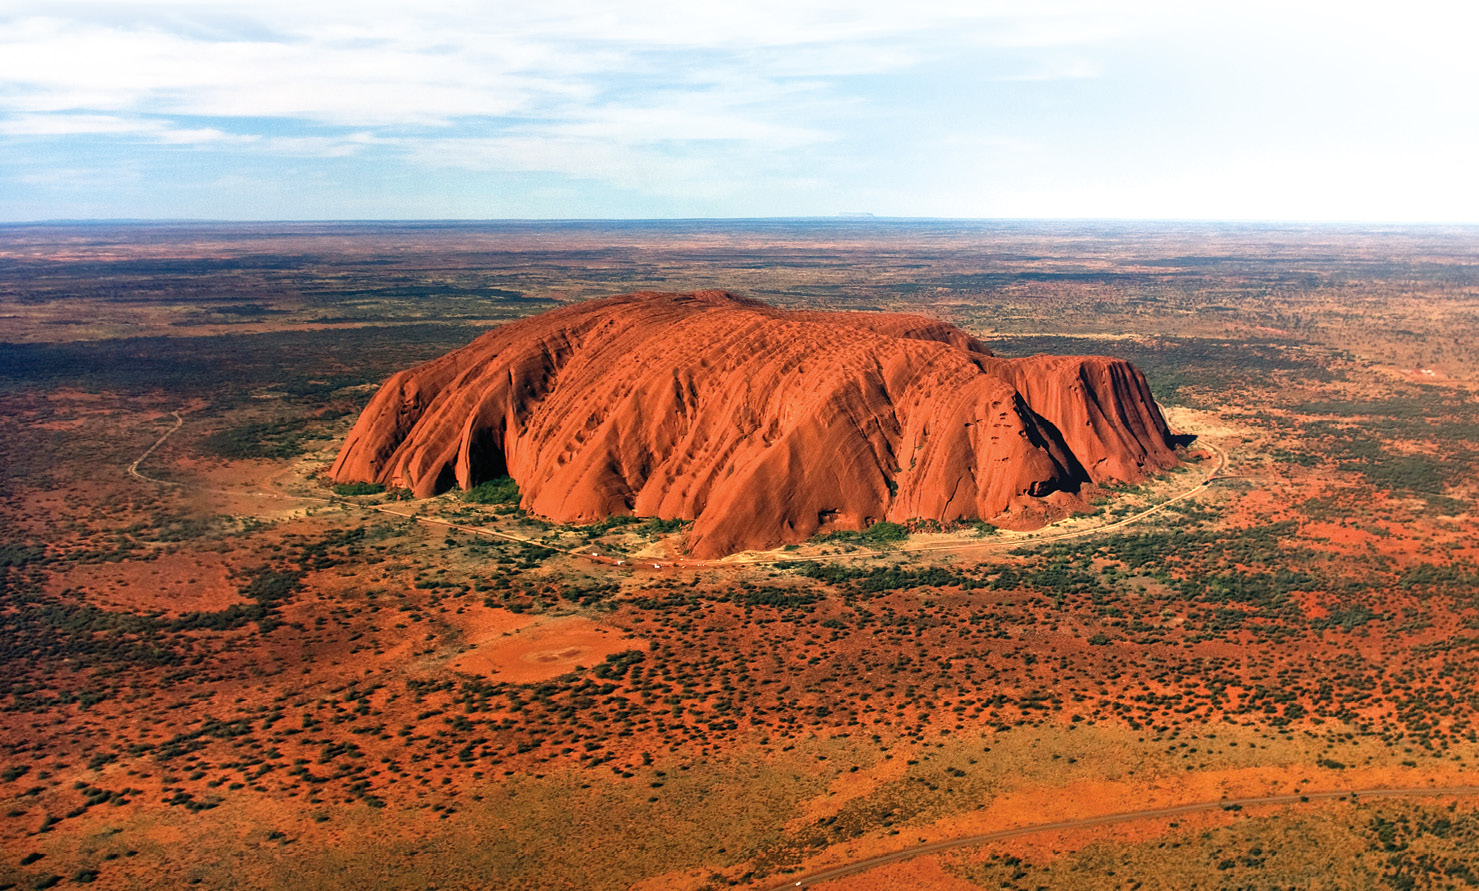 BELOW An official ban on climbing Uluru, which is a site of great spiritual significance for the Aboriginal people of Australia, was passed in 2017 and came into force in 2019.